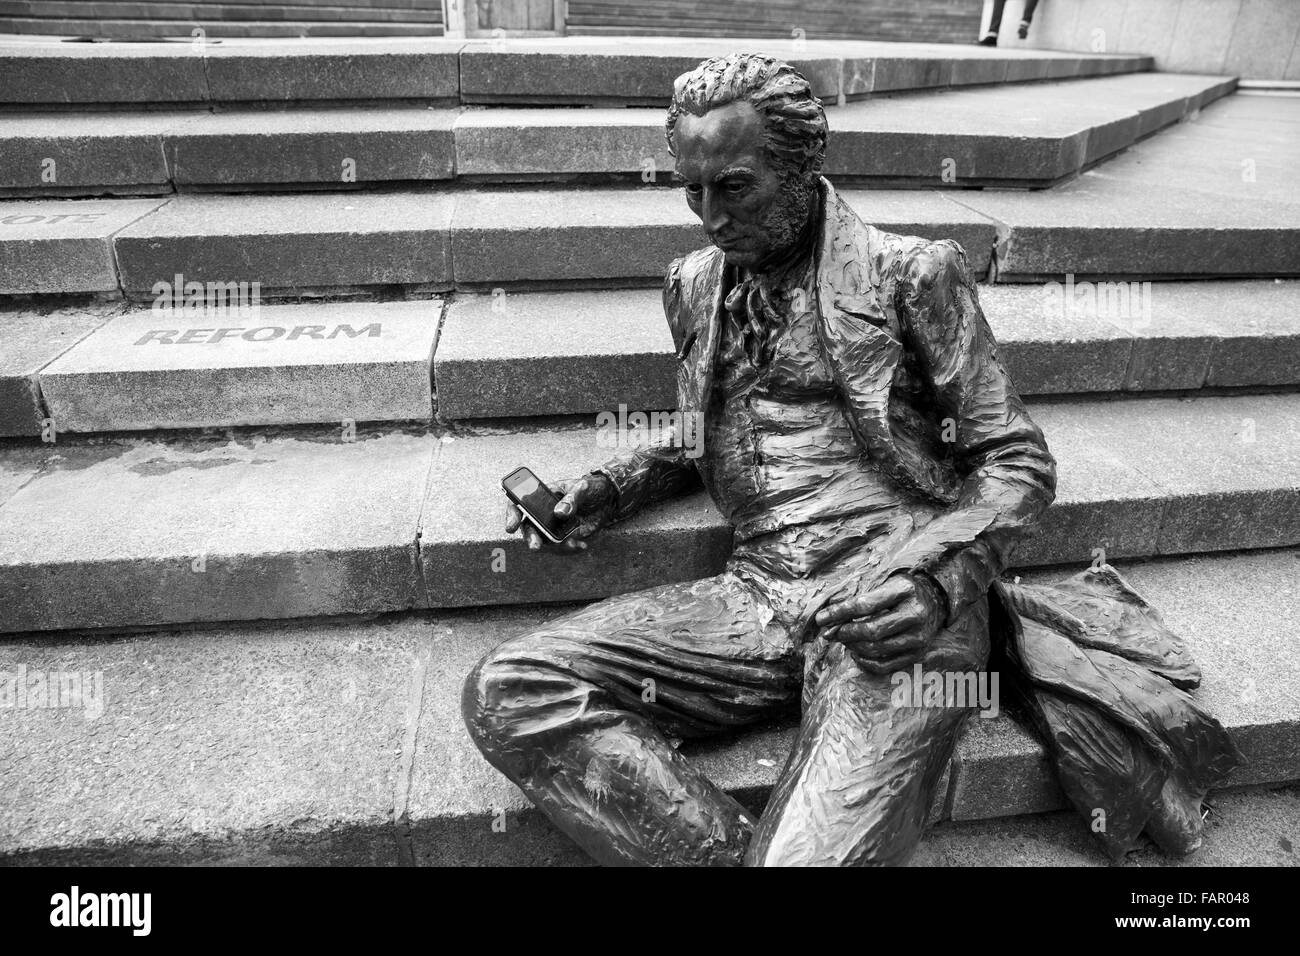 Statue of Thomas Attwood in Chamberlain Square, Birmingham, with mobile phone placed in his right hand. - Stock Image